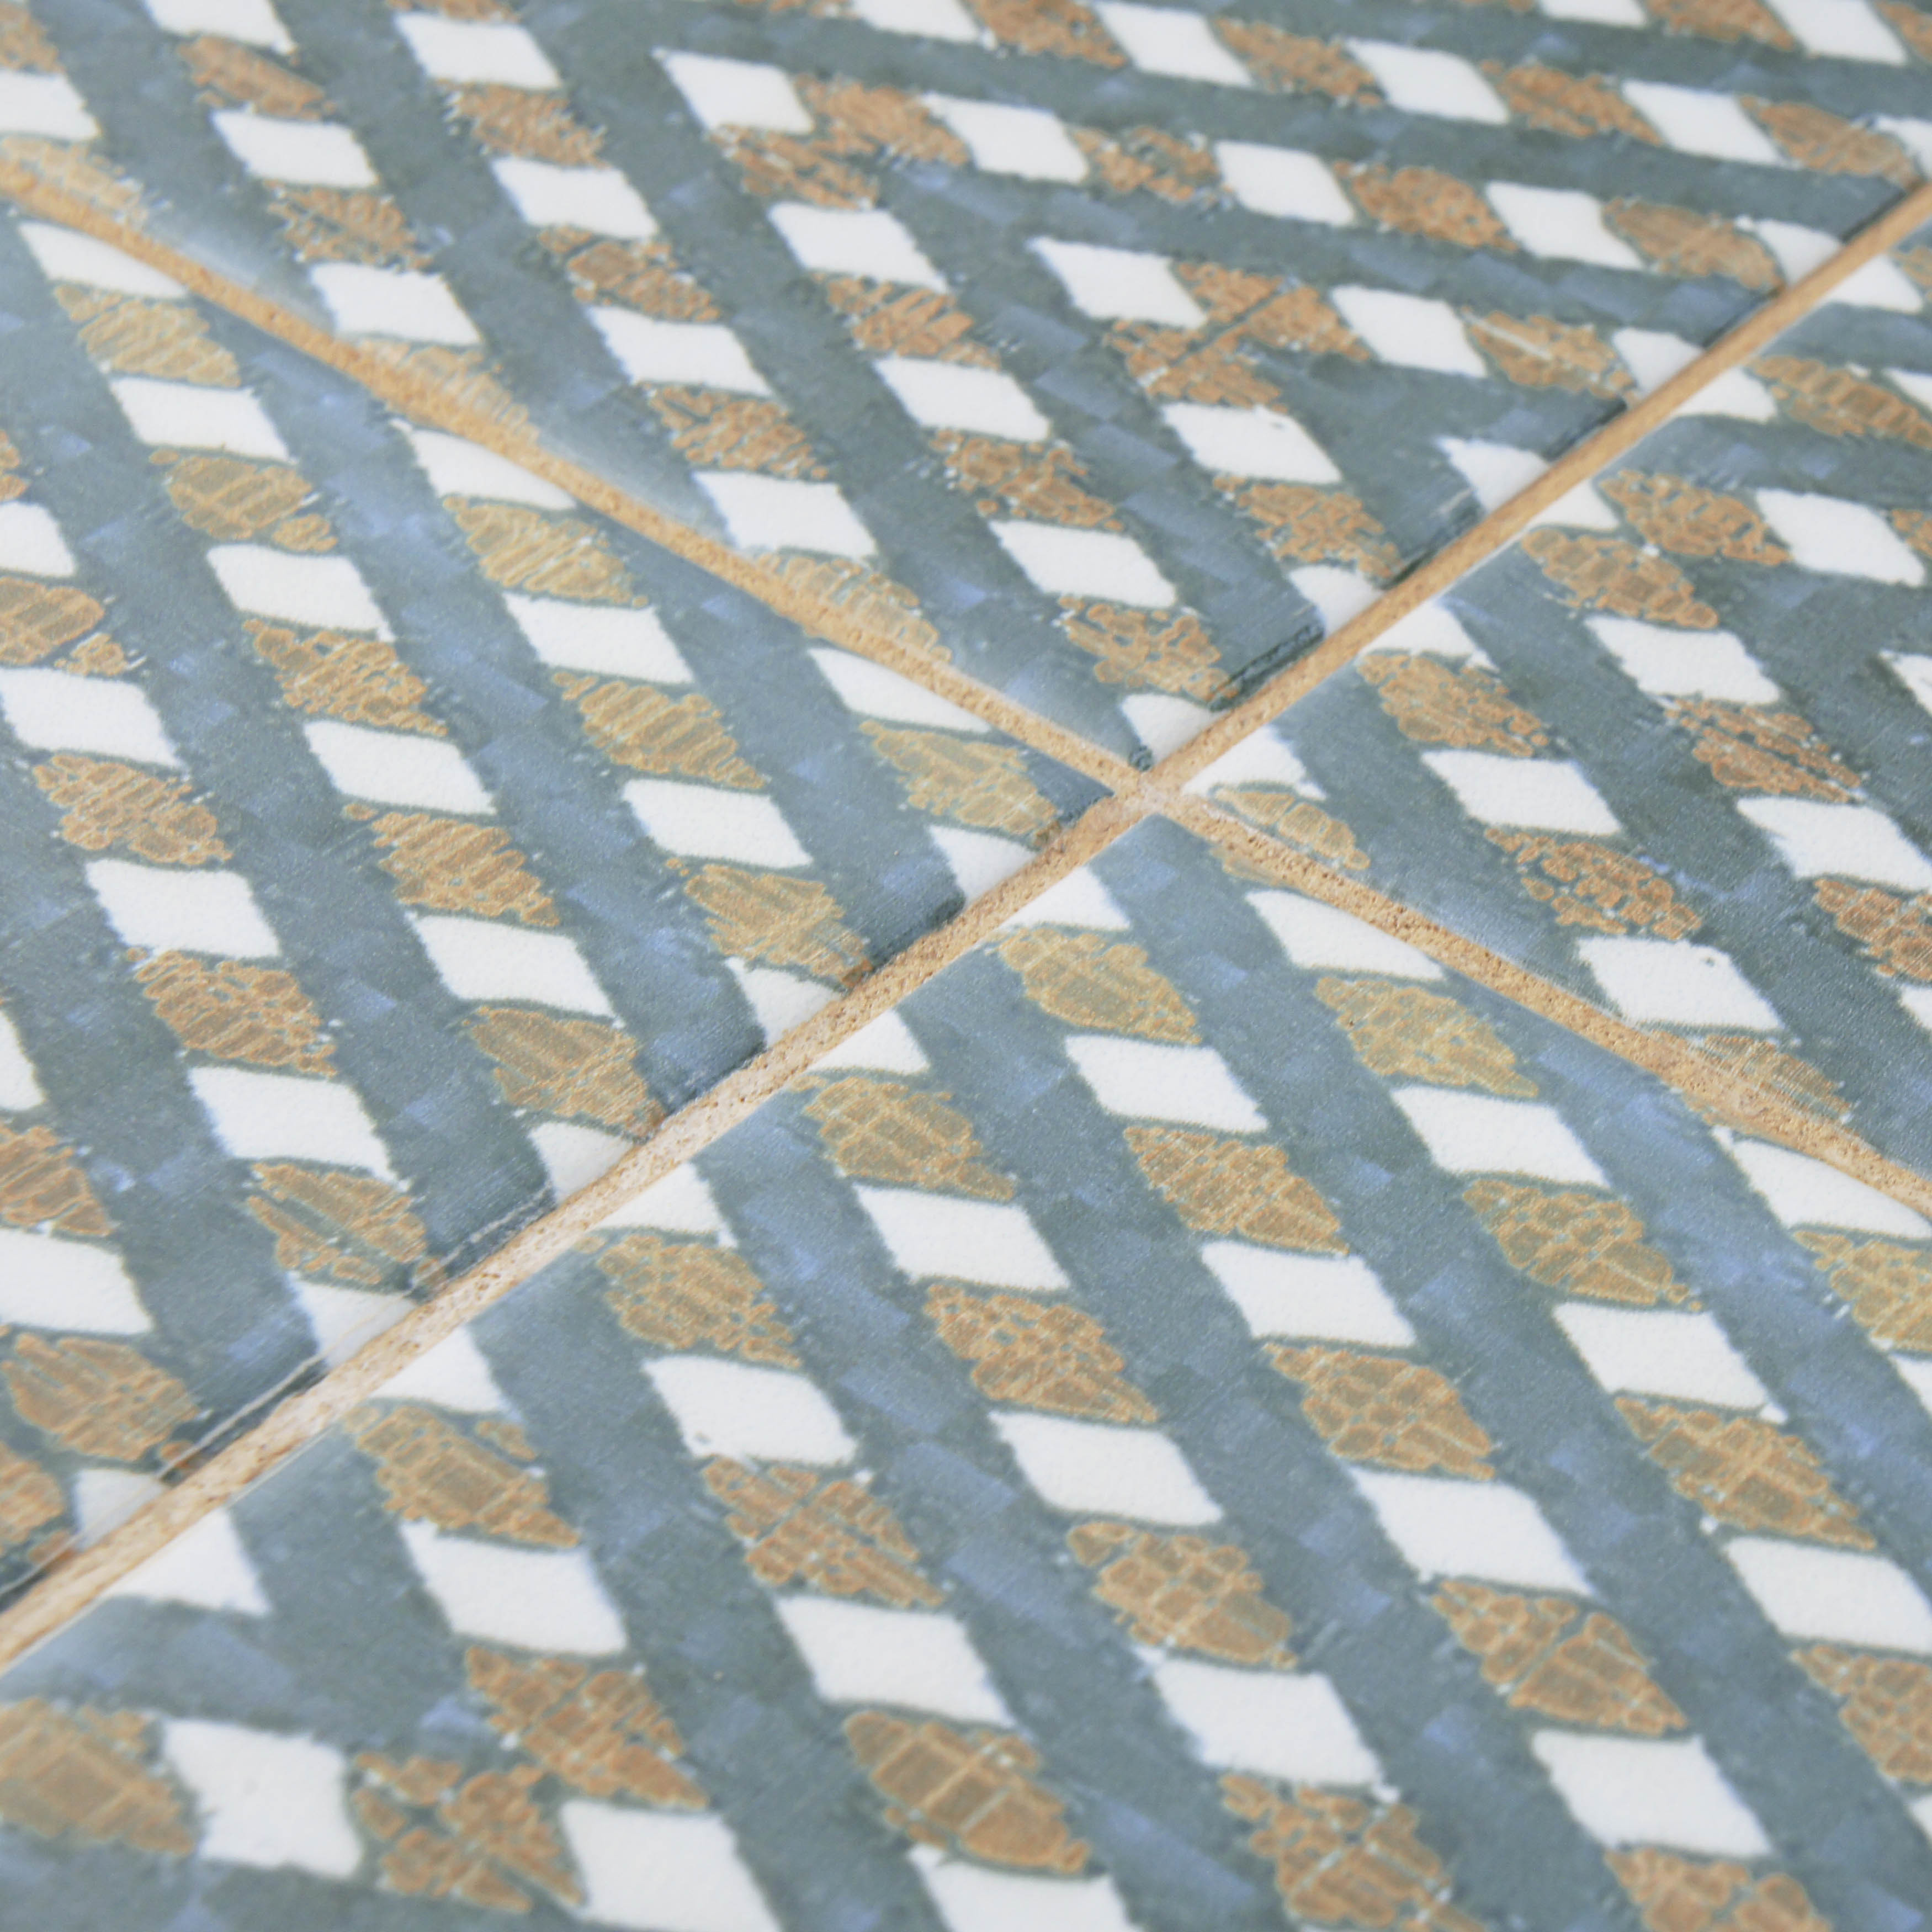 Shop SomerTile 7.75x7.75-inch Puccini Grid Ceramic Floor and Wall ...